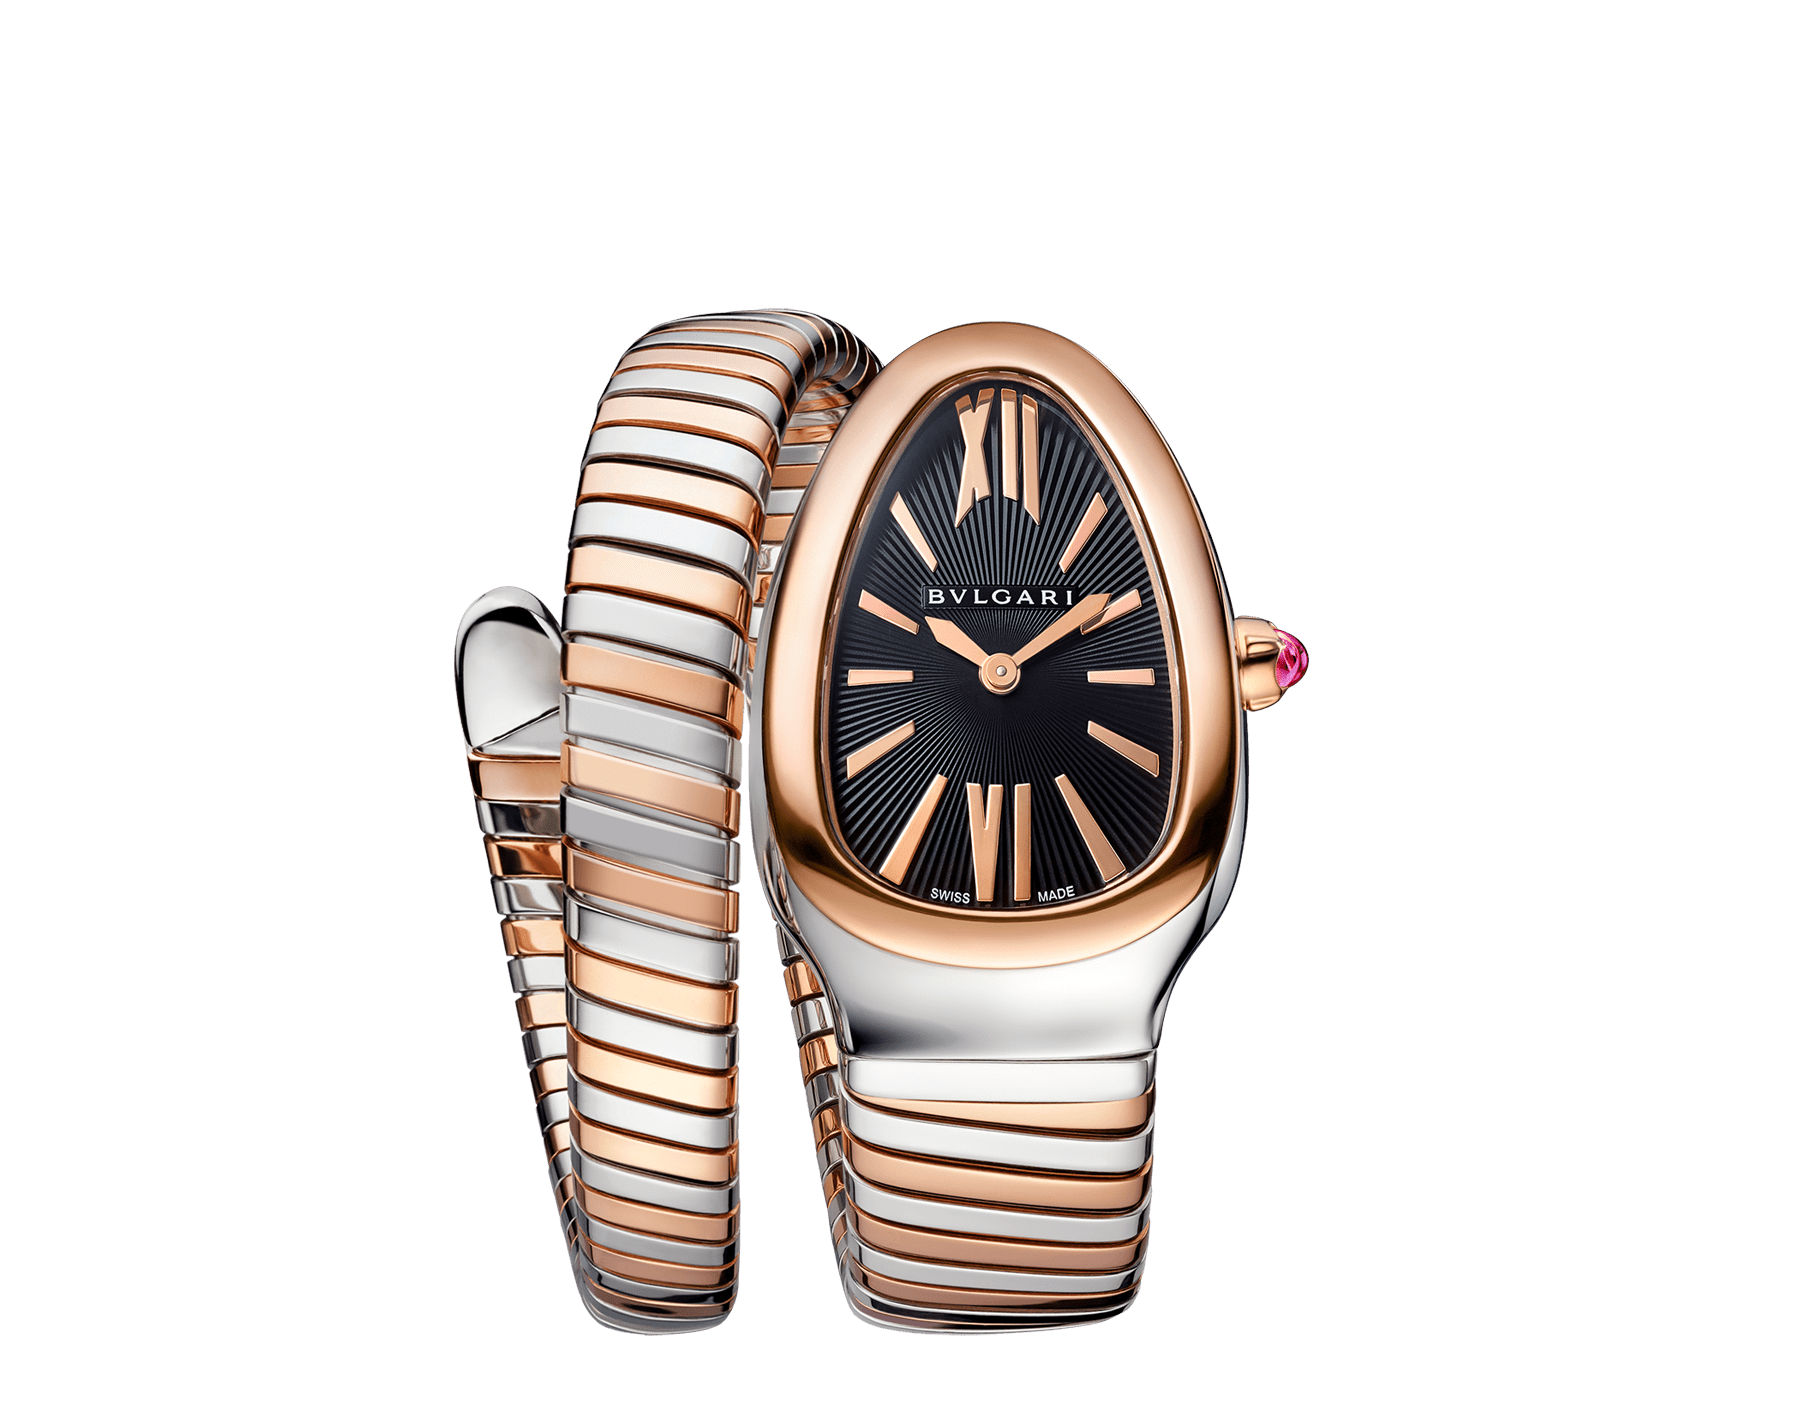 Serpenti Tubogas single spiral watch in 18 kt rose gold and stainless steel case and bracelet, with black opaline dial. 102123 image 1